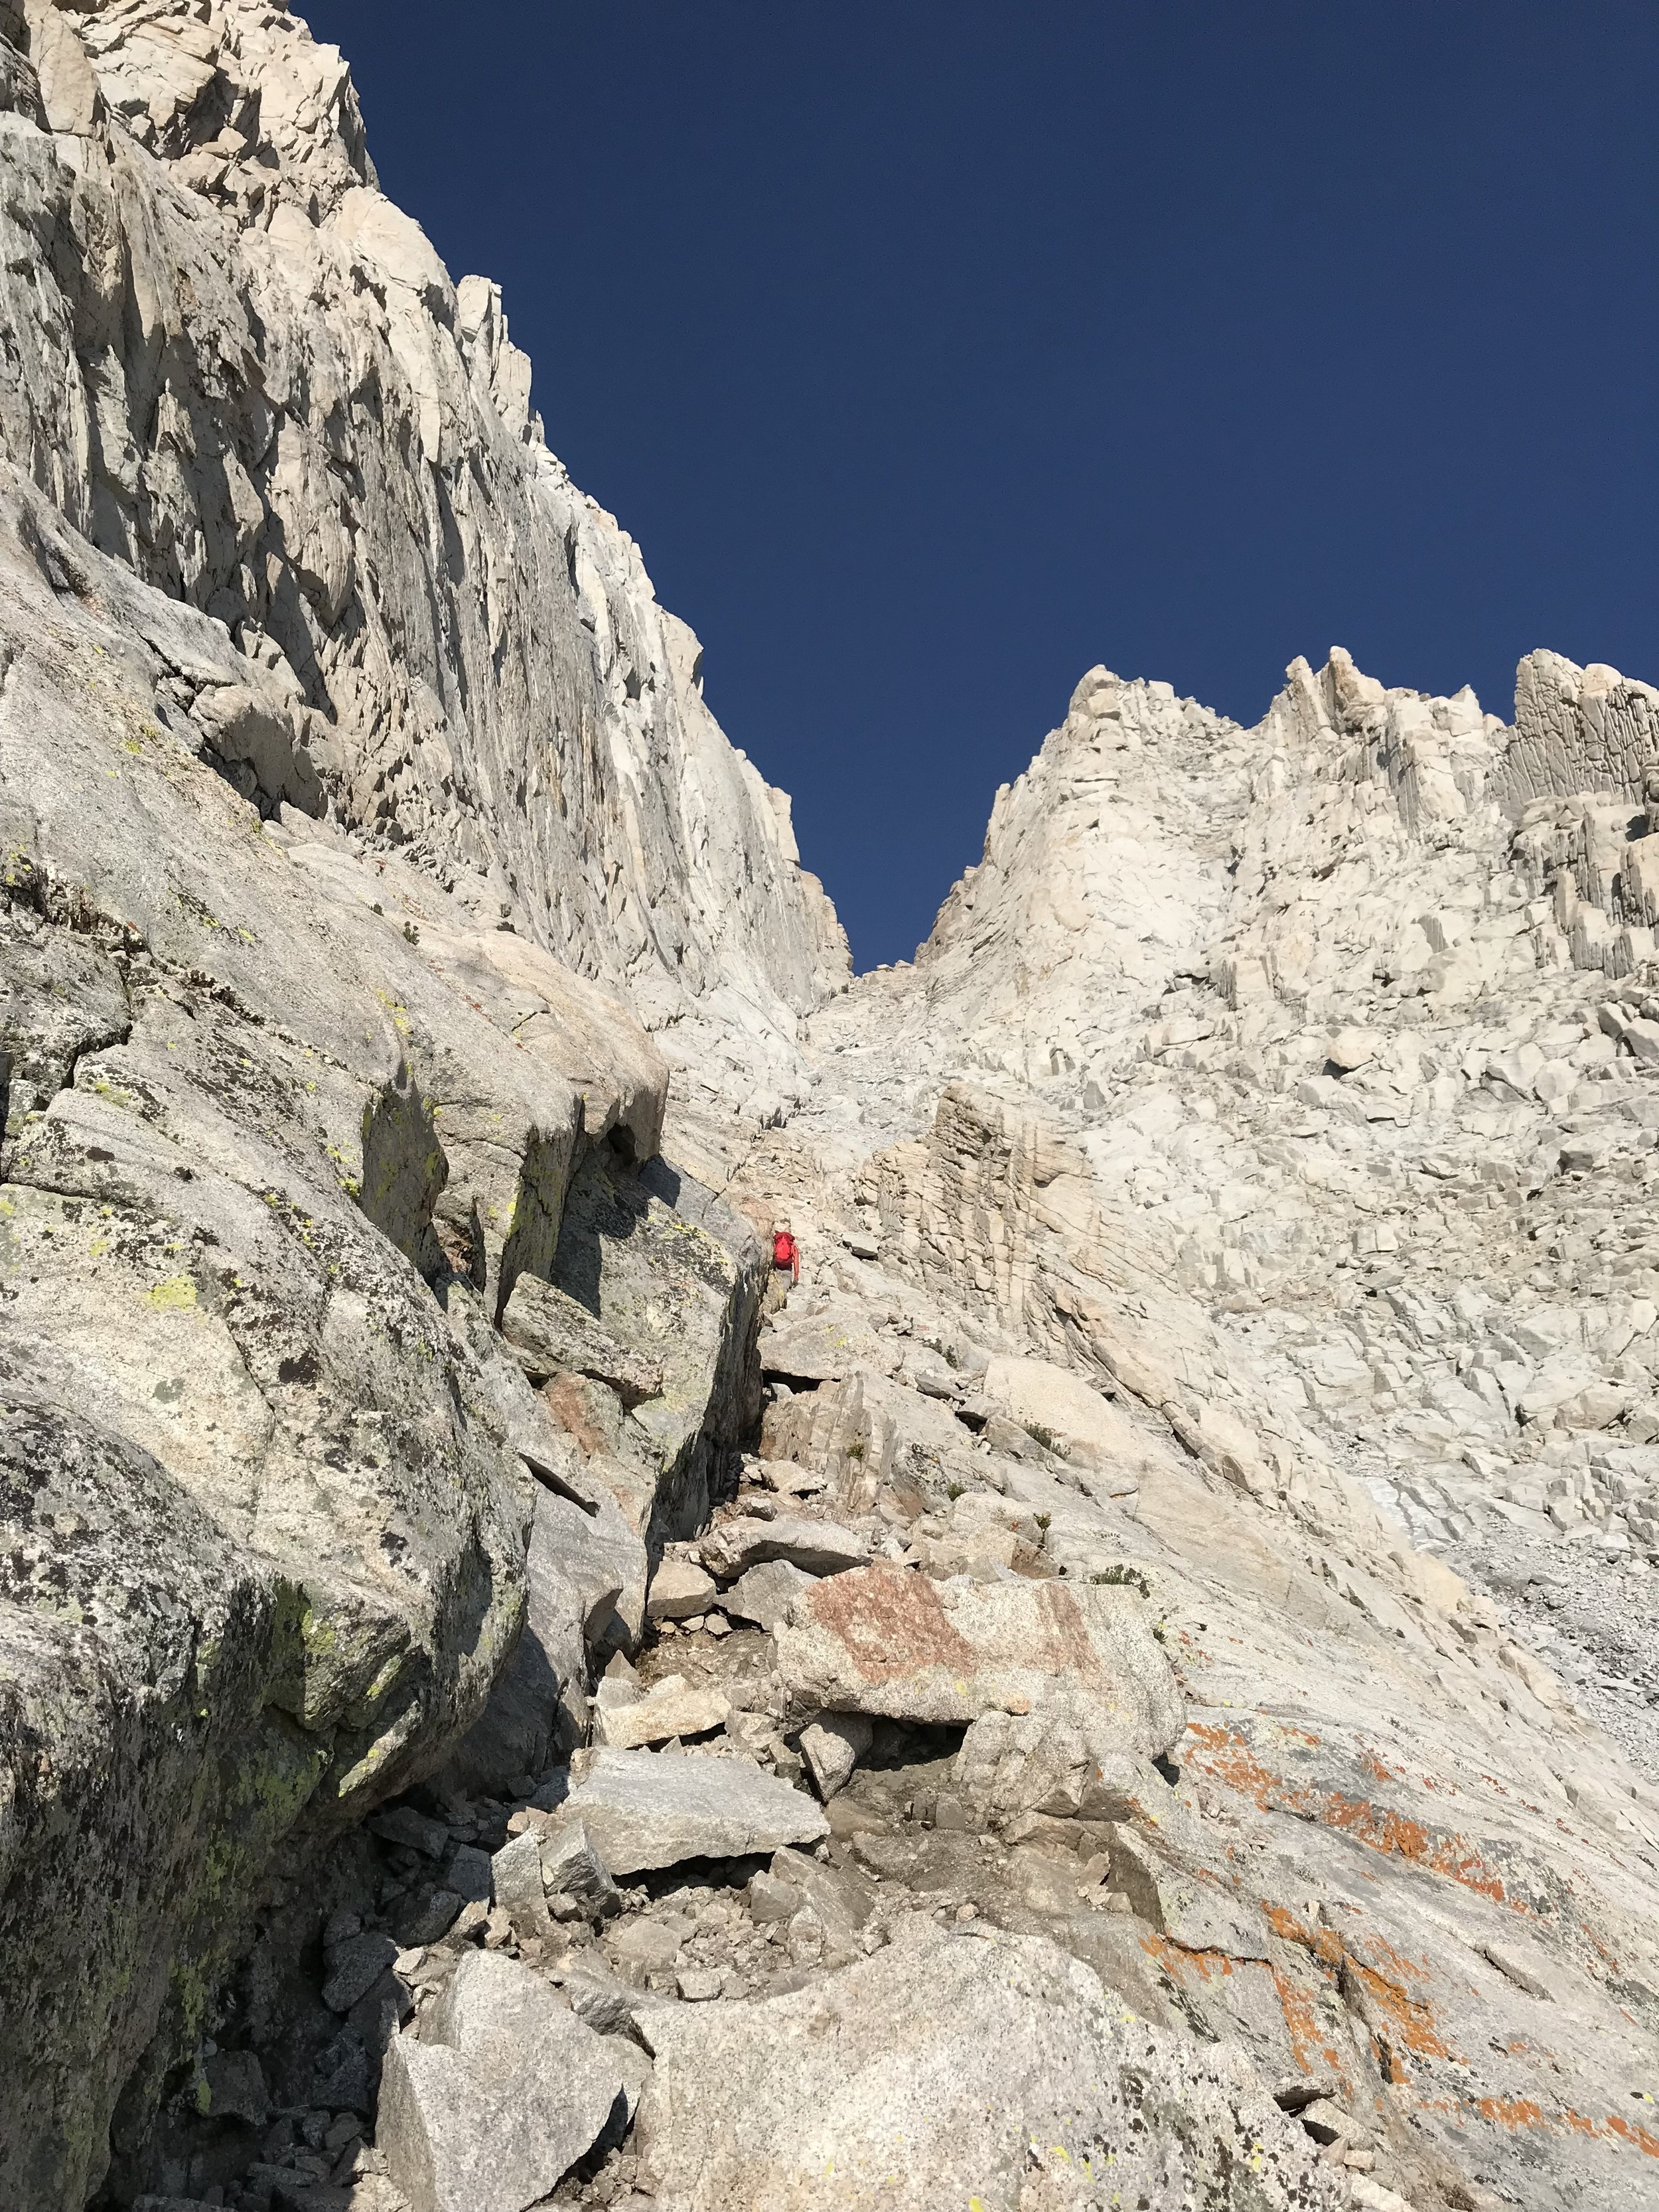 Cutting across the boulder fields and up towards the chute.